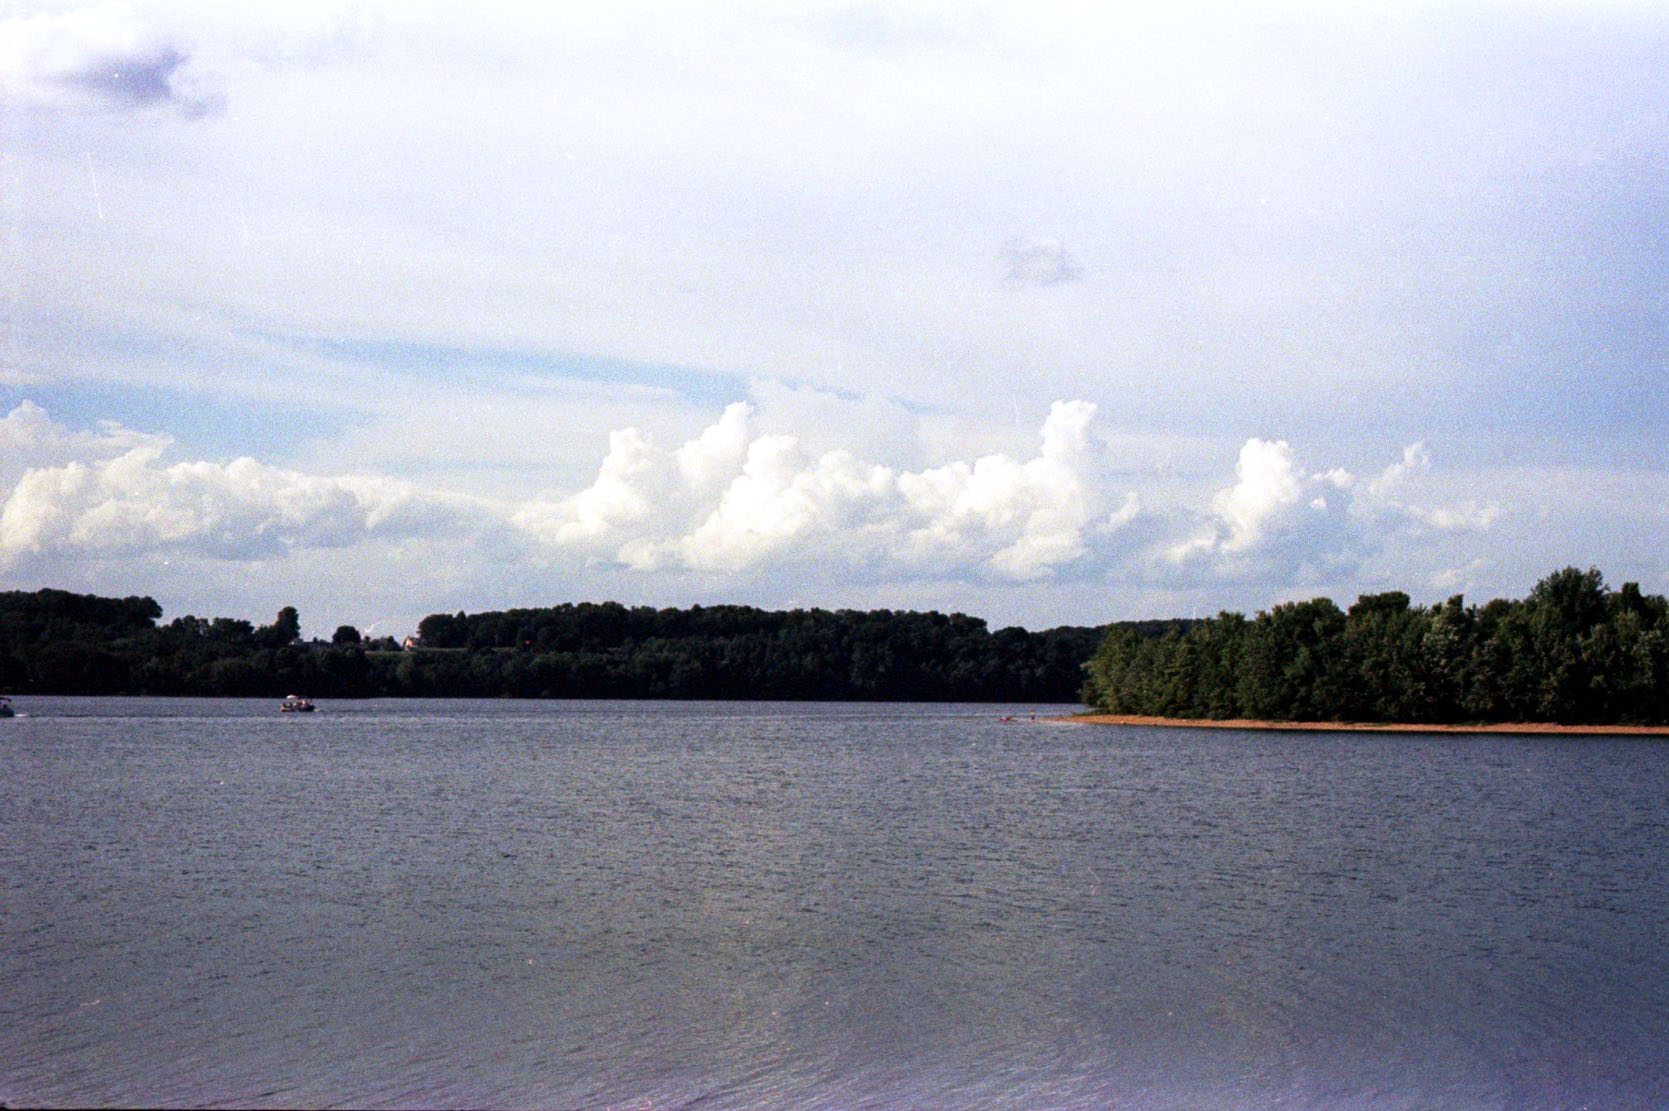 clouds_over_lake_marburg_28486265533_o.jpg